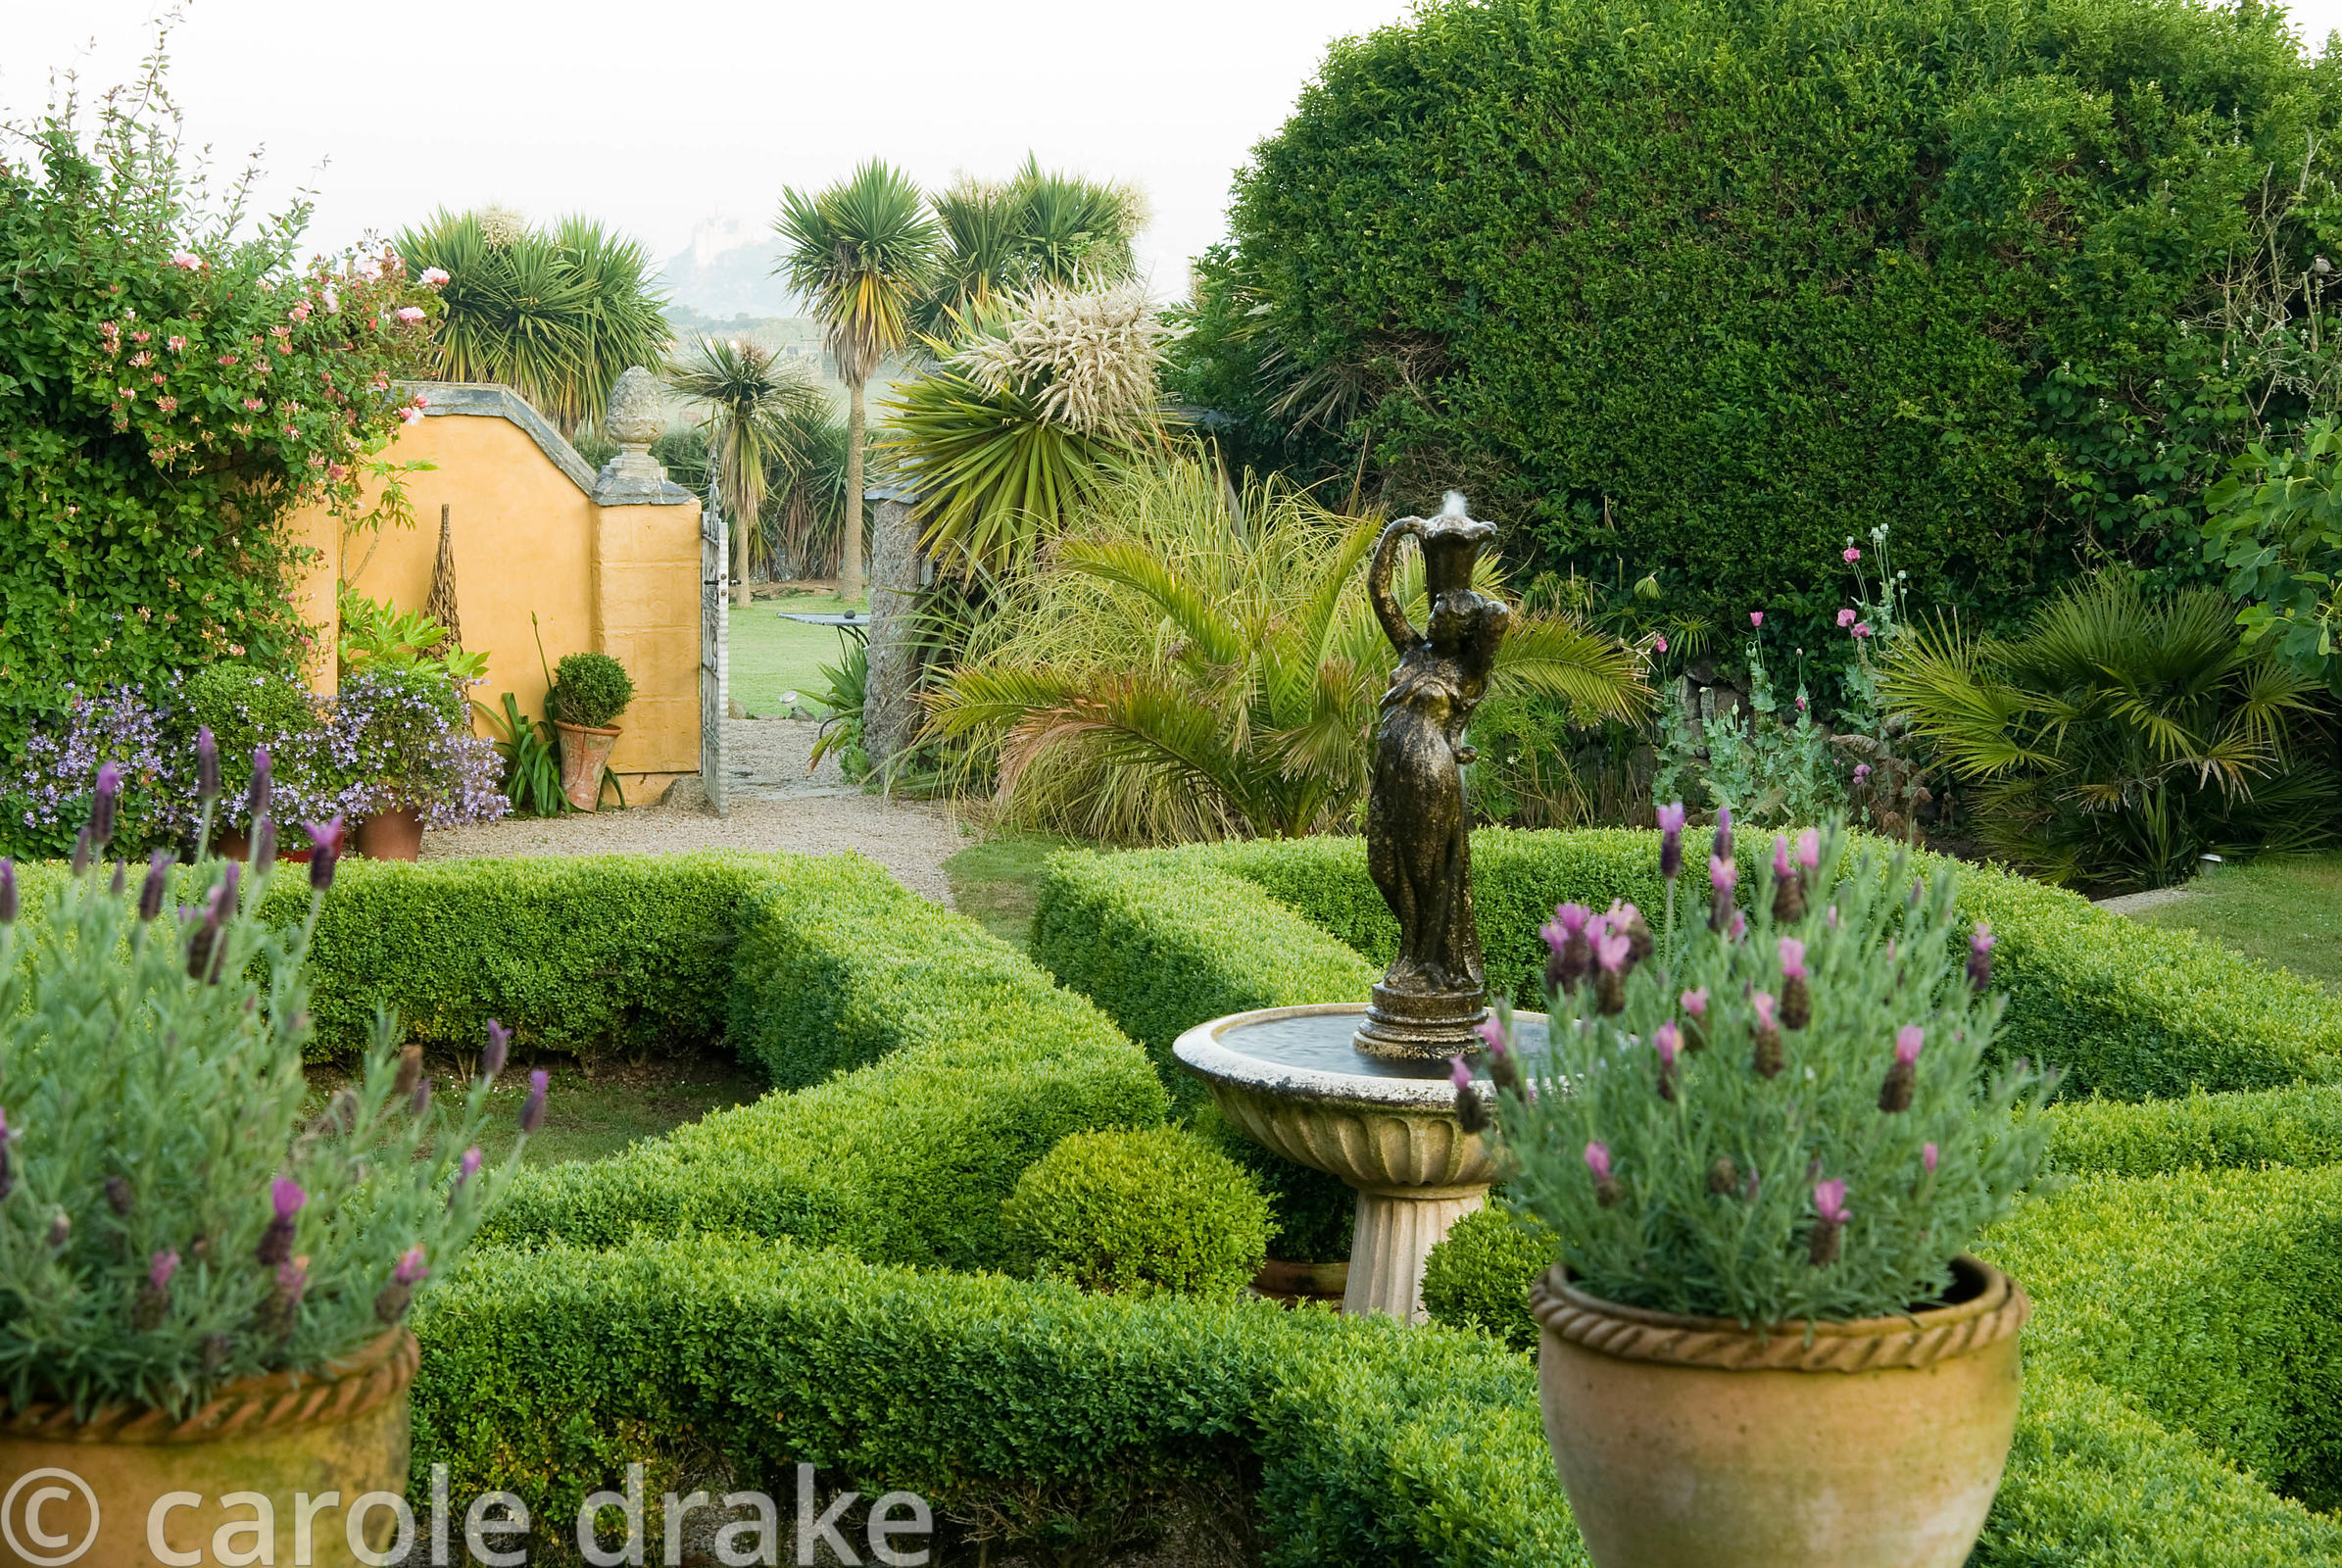 Box parterre with central water feature and pots of French lavender in foreground. Through the gate beyond are cordylines tha...